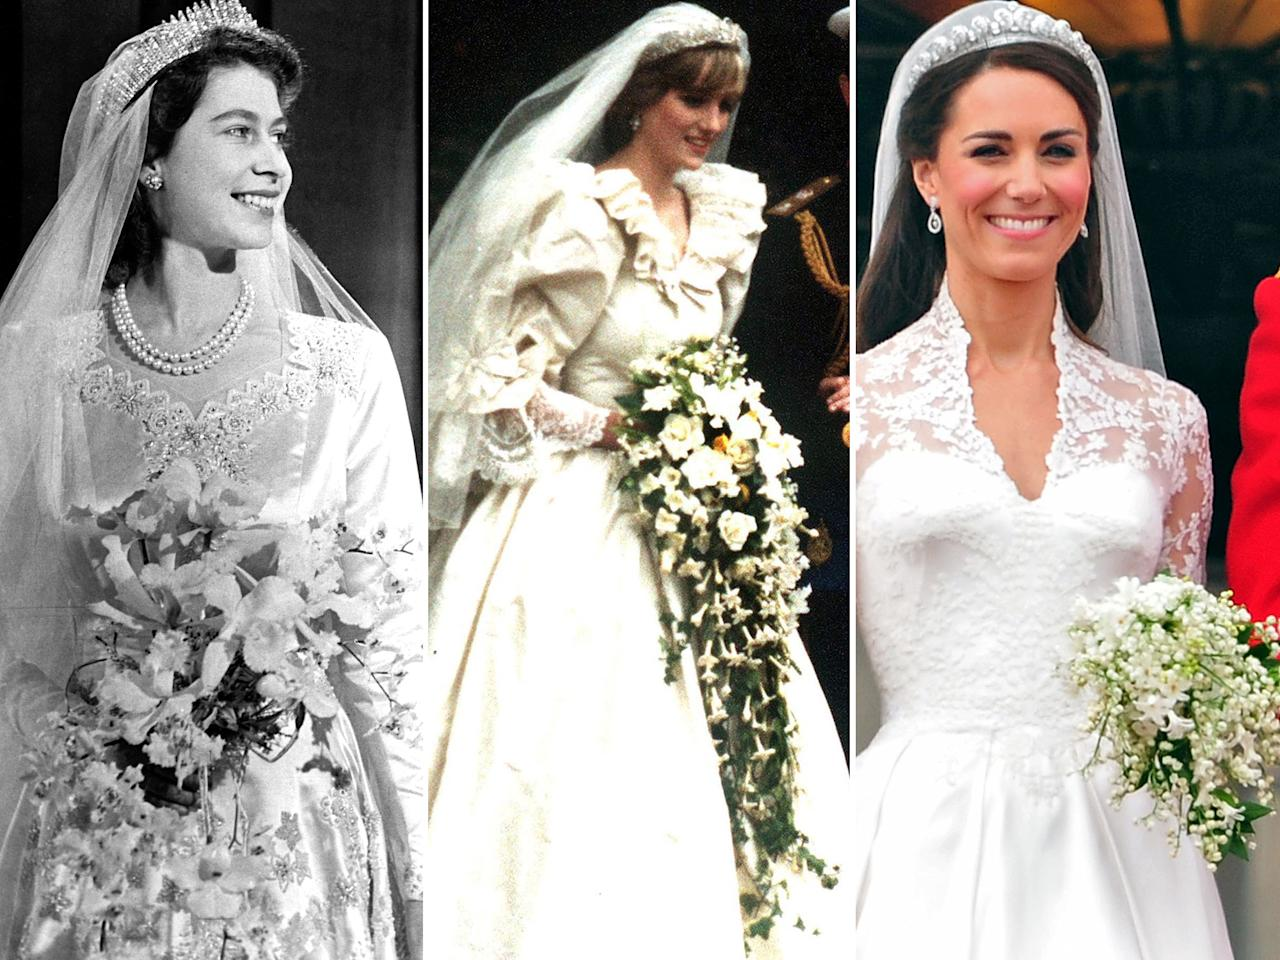 "<p>""Every single bridal bouquet since 1840 has included a sprig of myrtle from Queen Victoria's very own garden. Myrtle symbolizes love and fidelity, which makes it the perfect match for such a happy occasion,"" explains Carlson. Royal brides in the past have also favored elegant white blooms. What's one thing that we won't be seeing at Meghan Markle's wedding? The bouquet toss is a definite no-no at royal weddings.</p>"